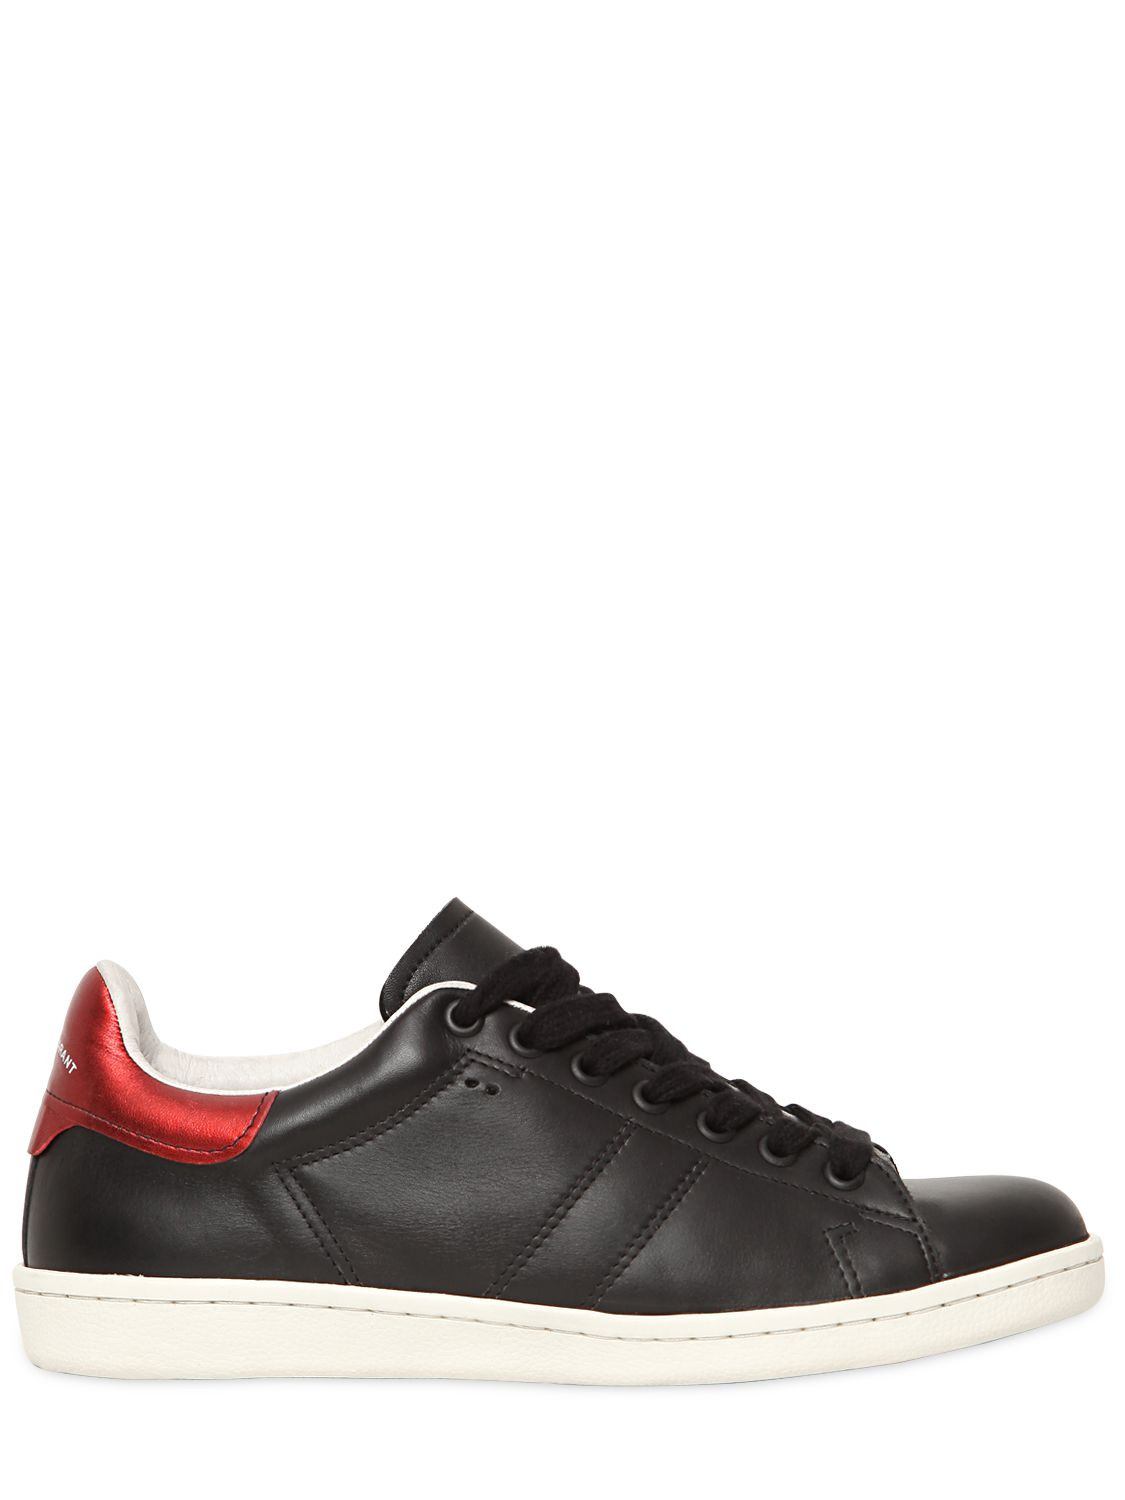 lyst isabel marant bart sneakers in black. Black Bedroom Furniture Sets. Home Design Ideas